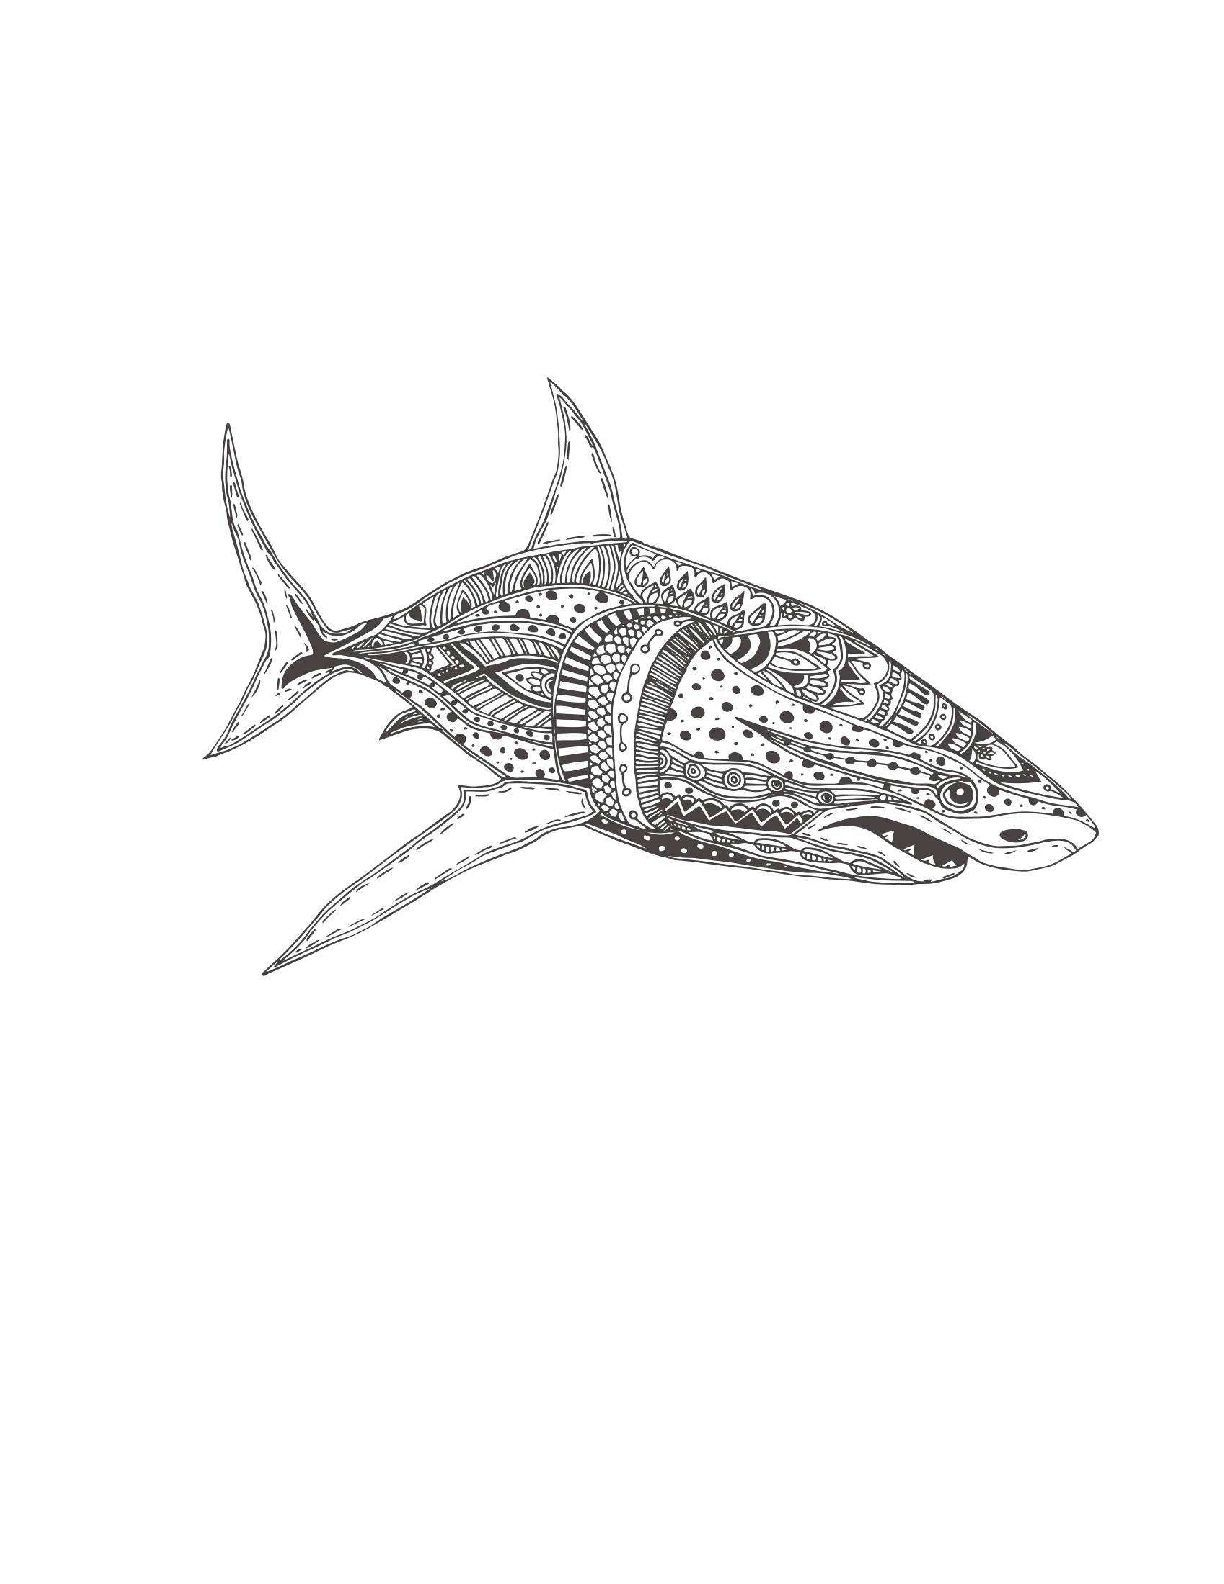 Great White Shark Coloring Page For Adults Shark Coloring Shark Coloring Pages Beach Coloring Pages Coloring Pages